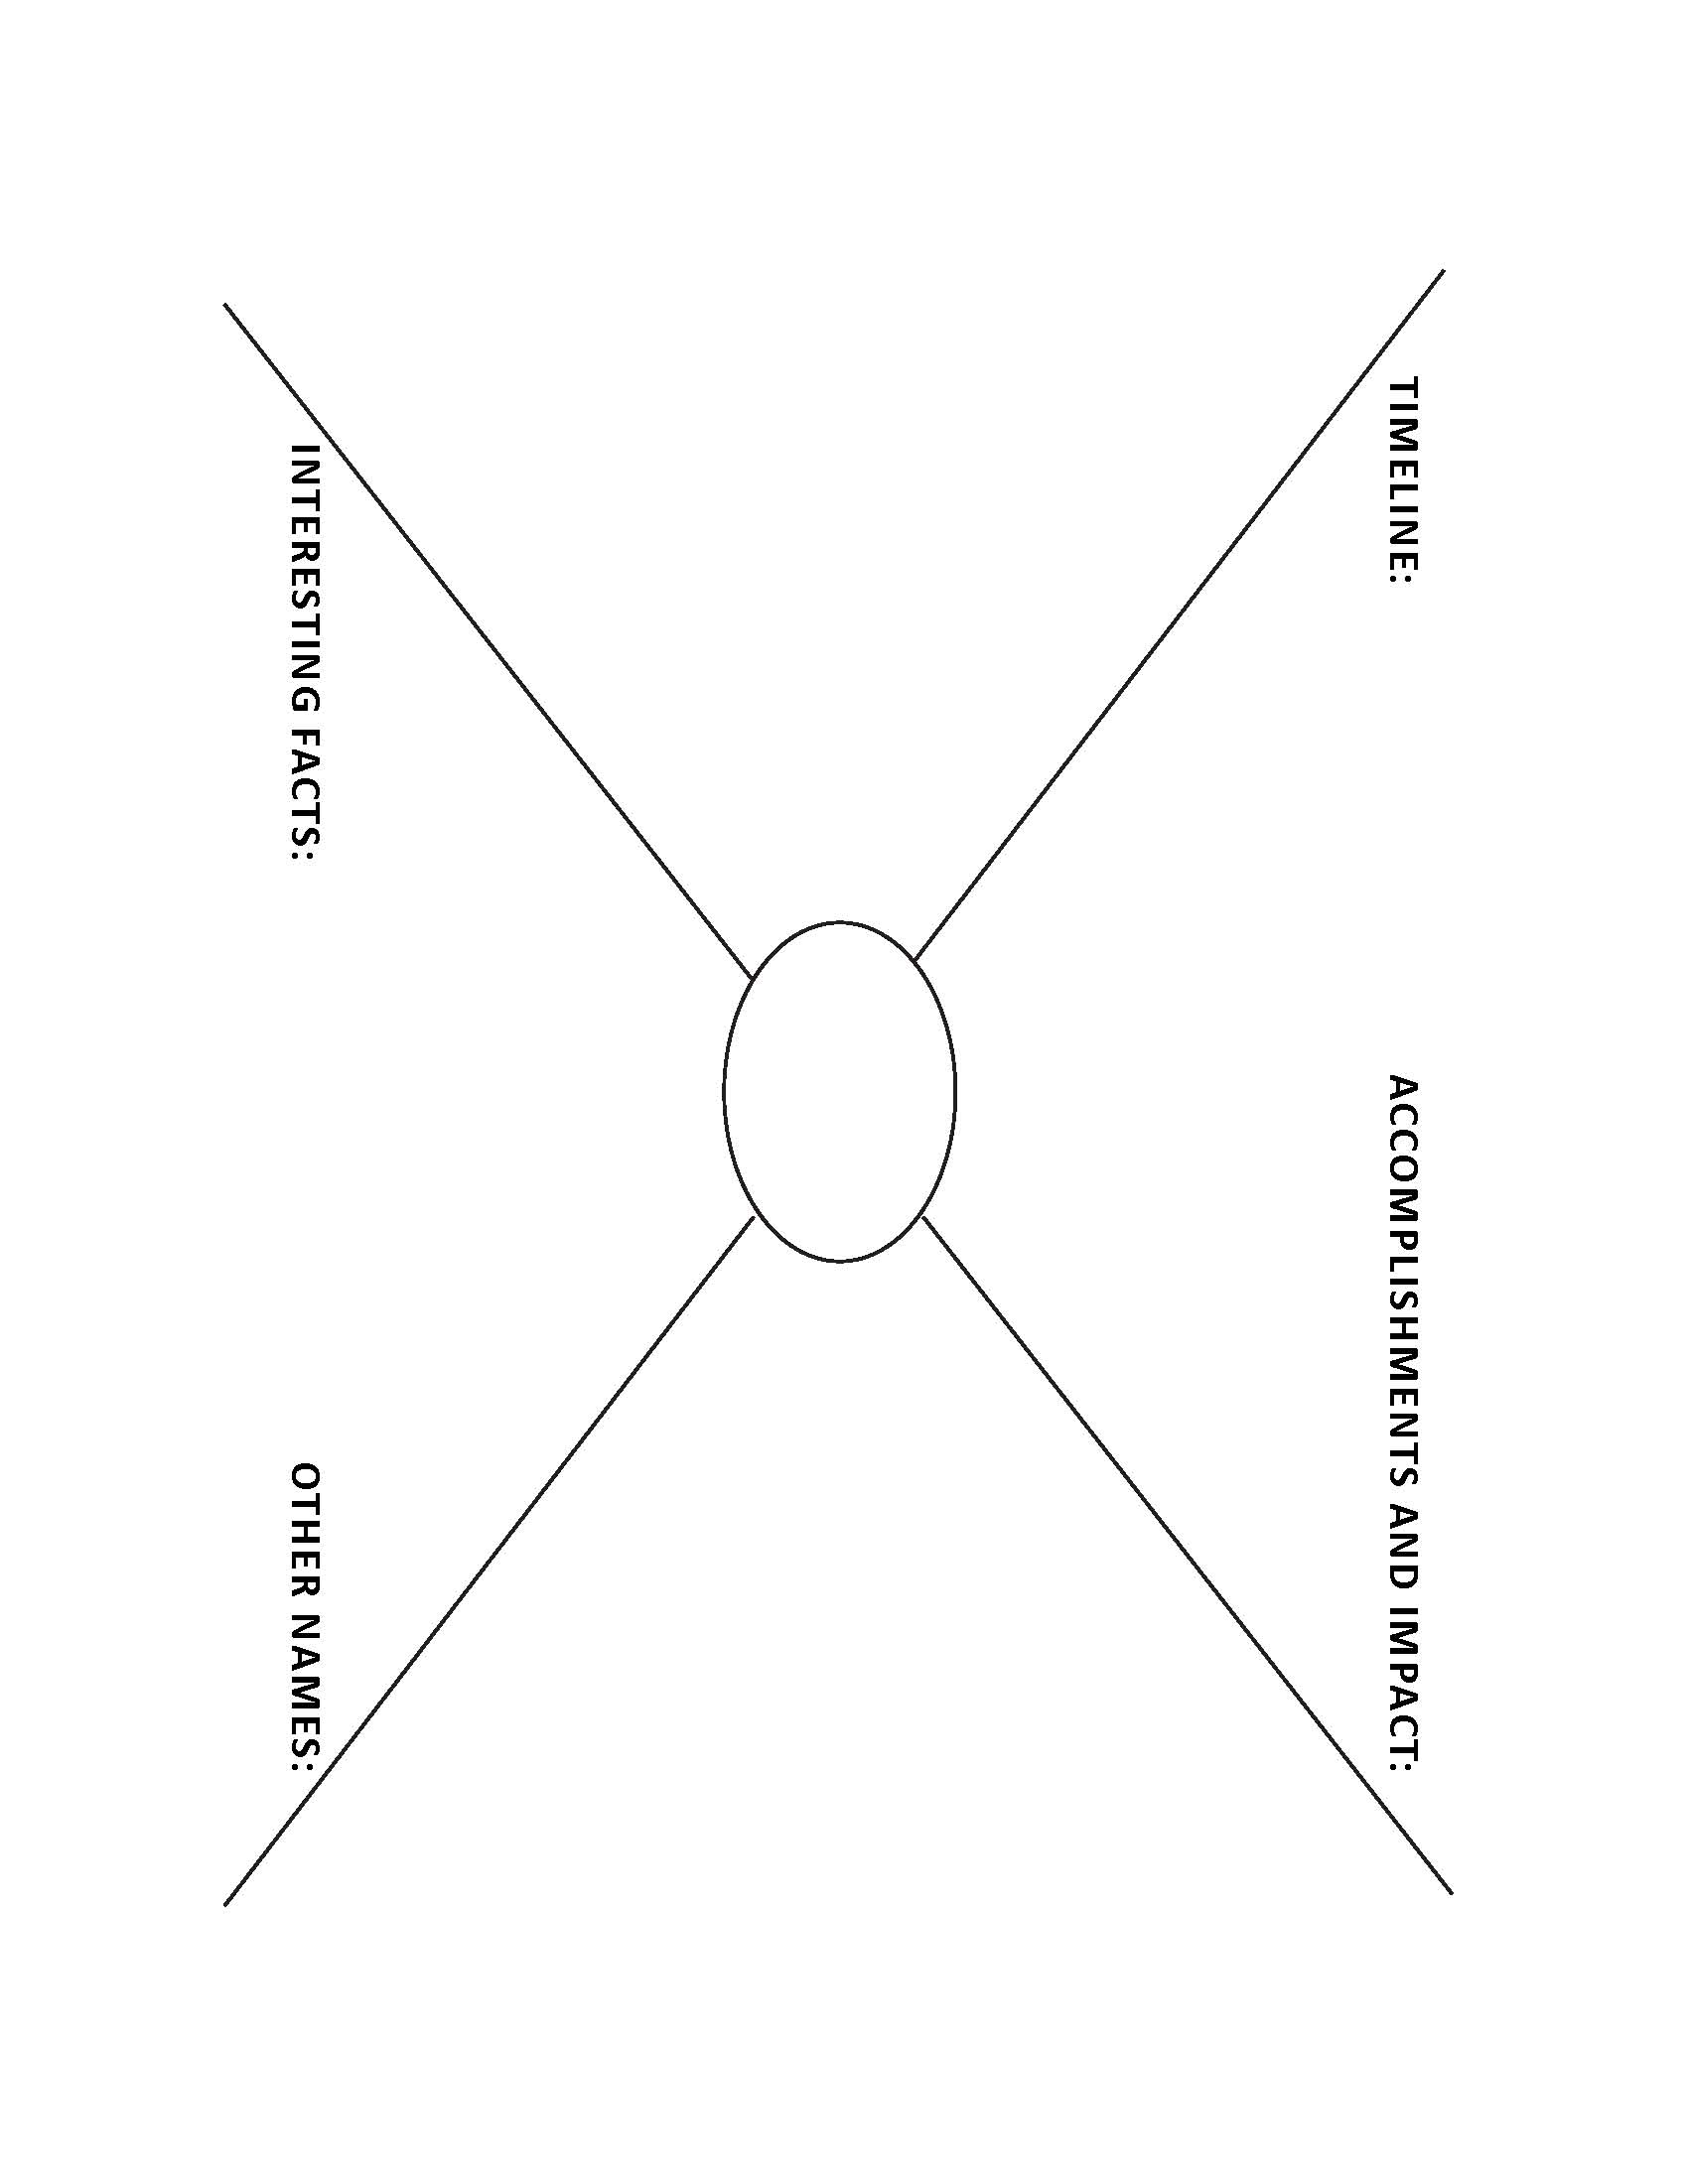 Blank Mind Map Template The categories on the mind map